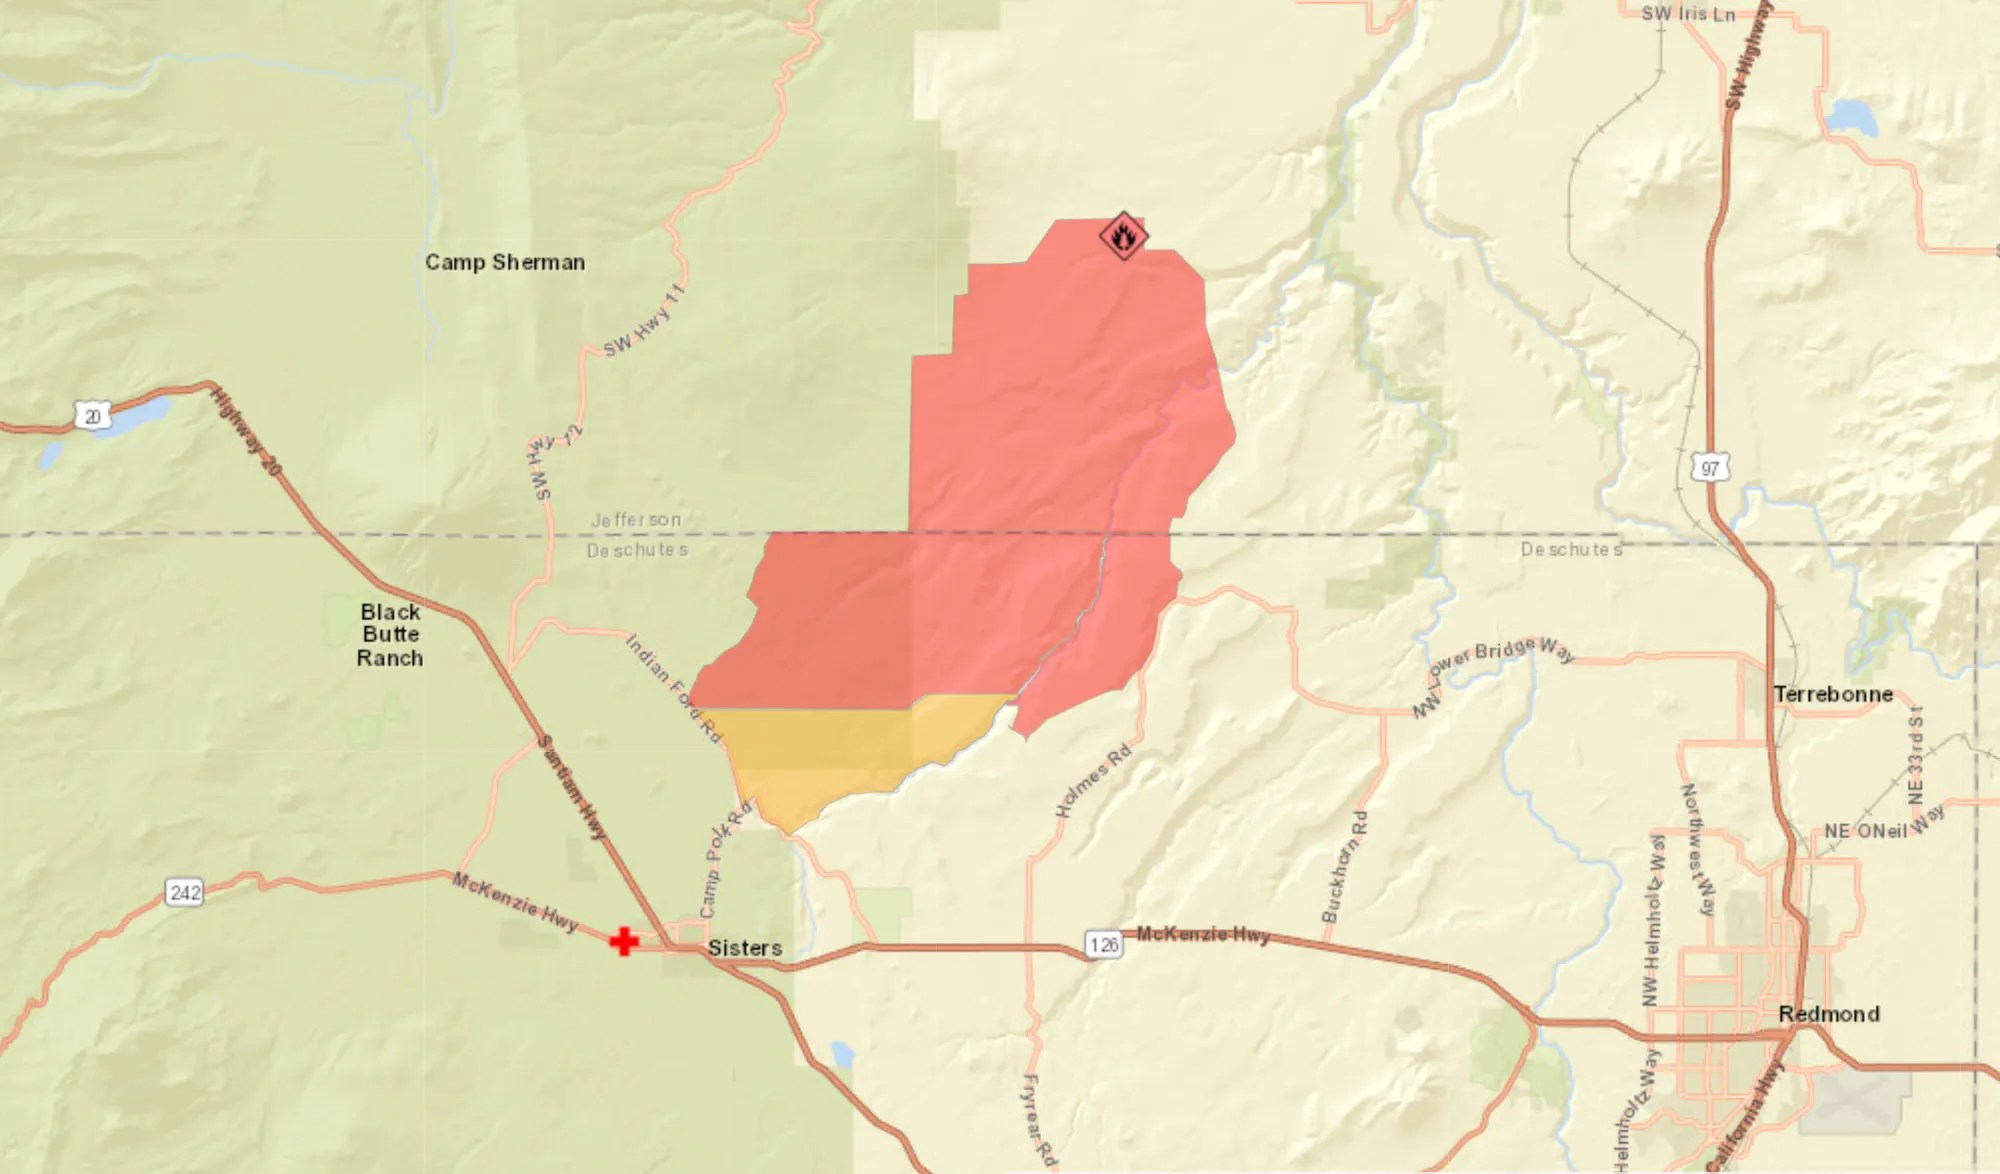 It seems that fires in california news remain top stories throughout the year. Oregon Wildfires Moderate Temperatures Let Crews Mop Up Around Bruler Fire Perimeter